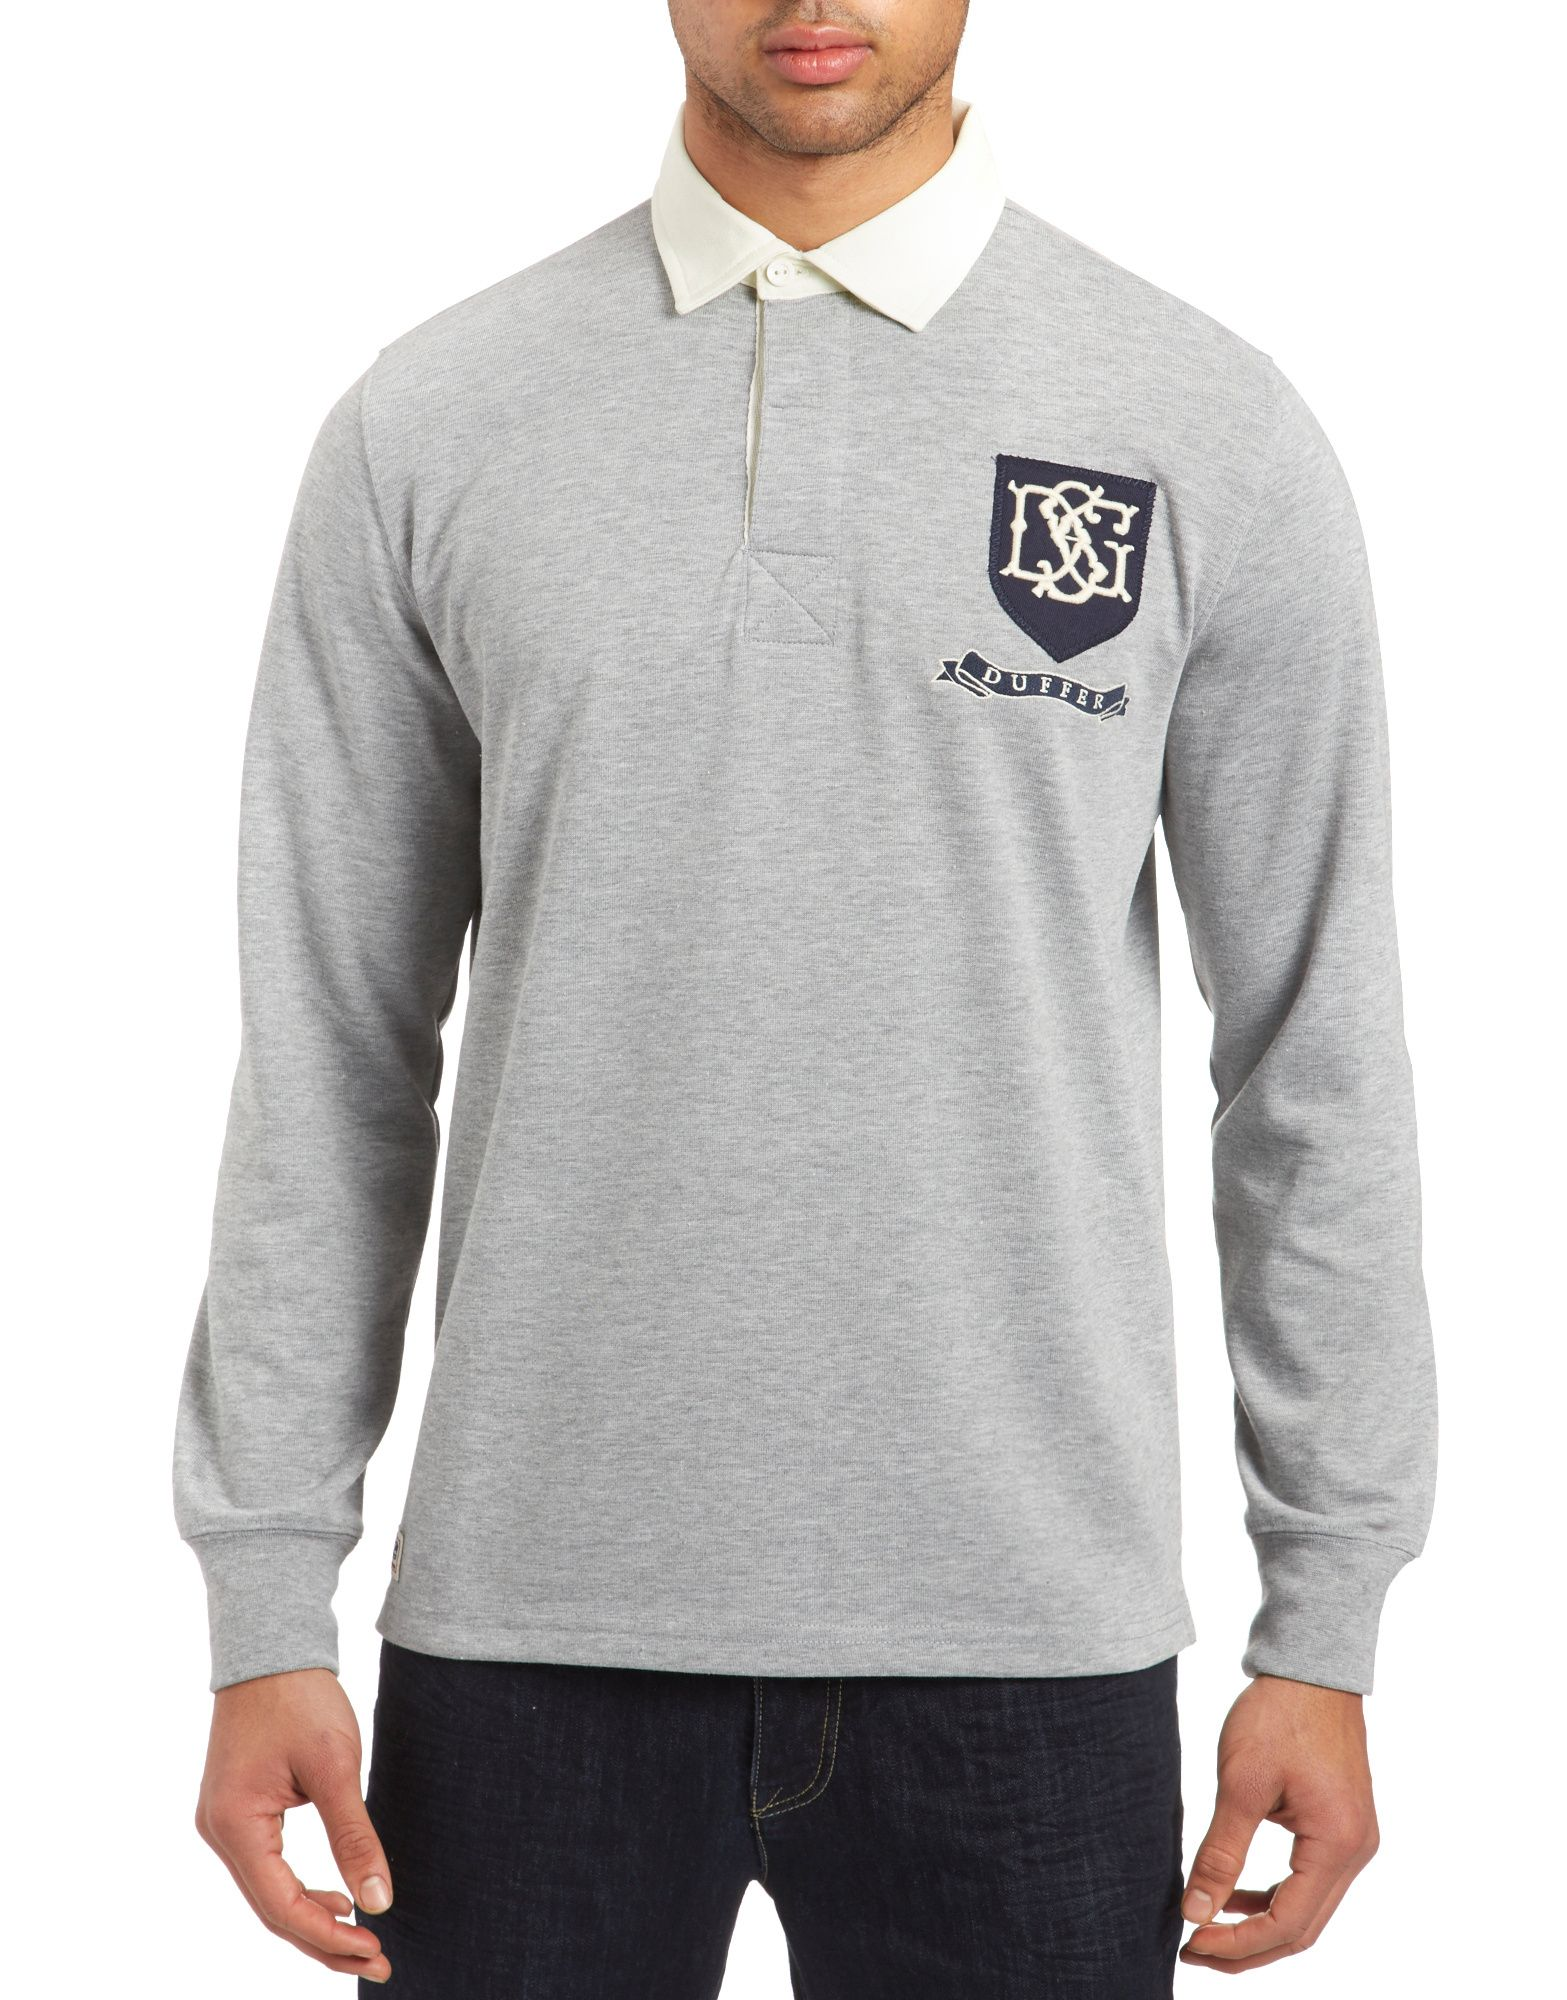 Duffer of St George Ashes Rugby Shirt